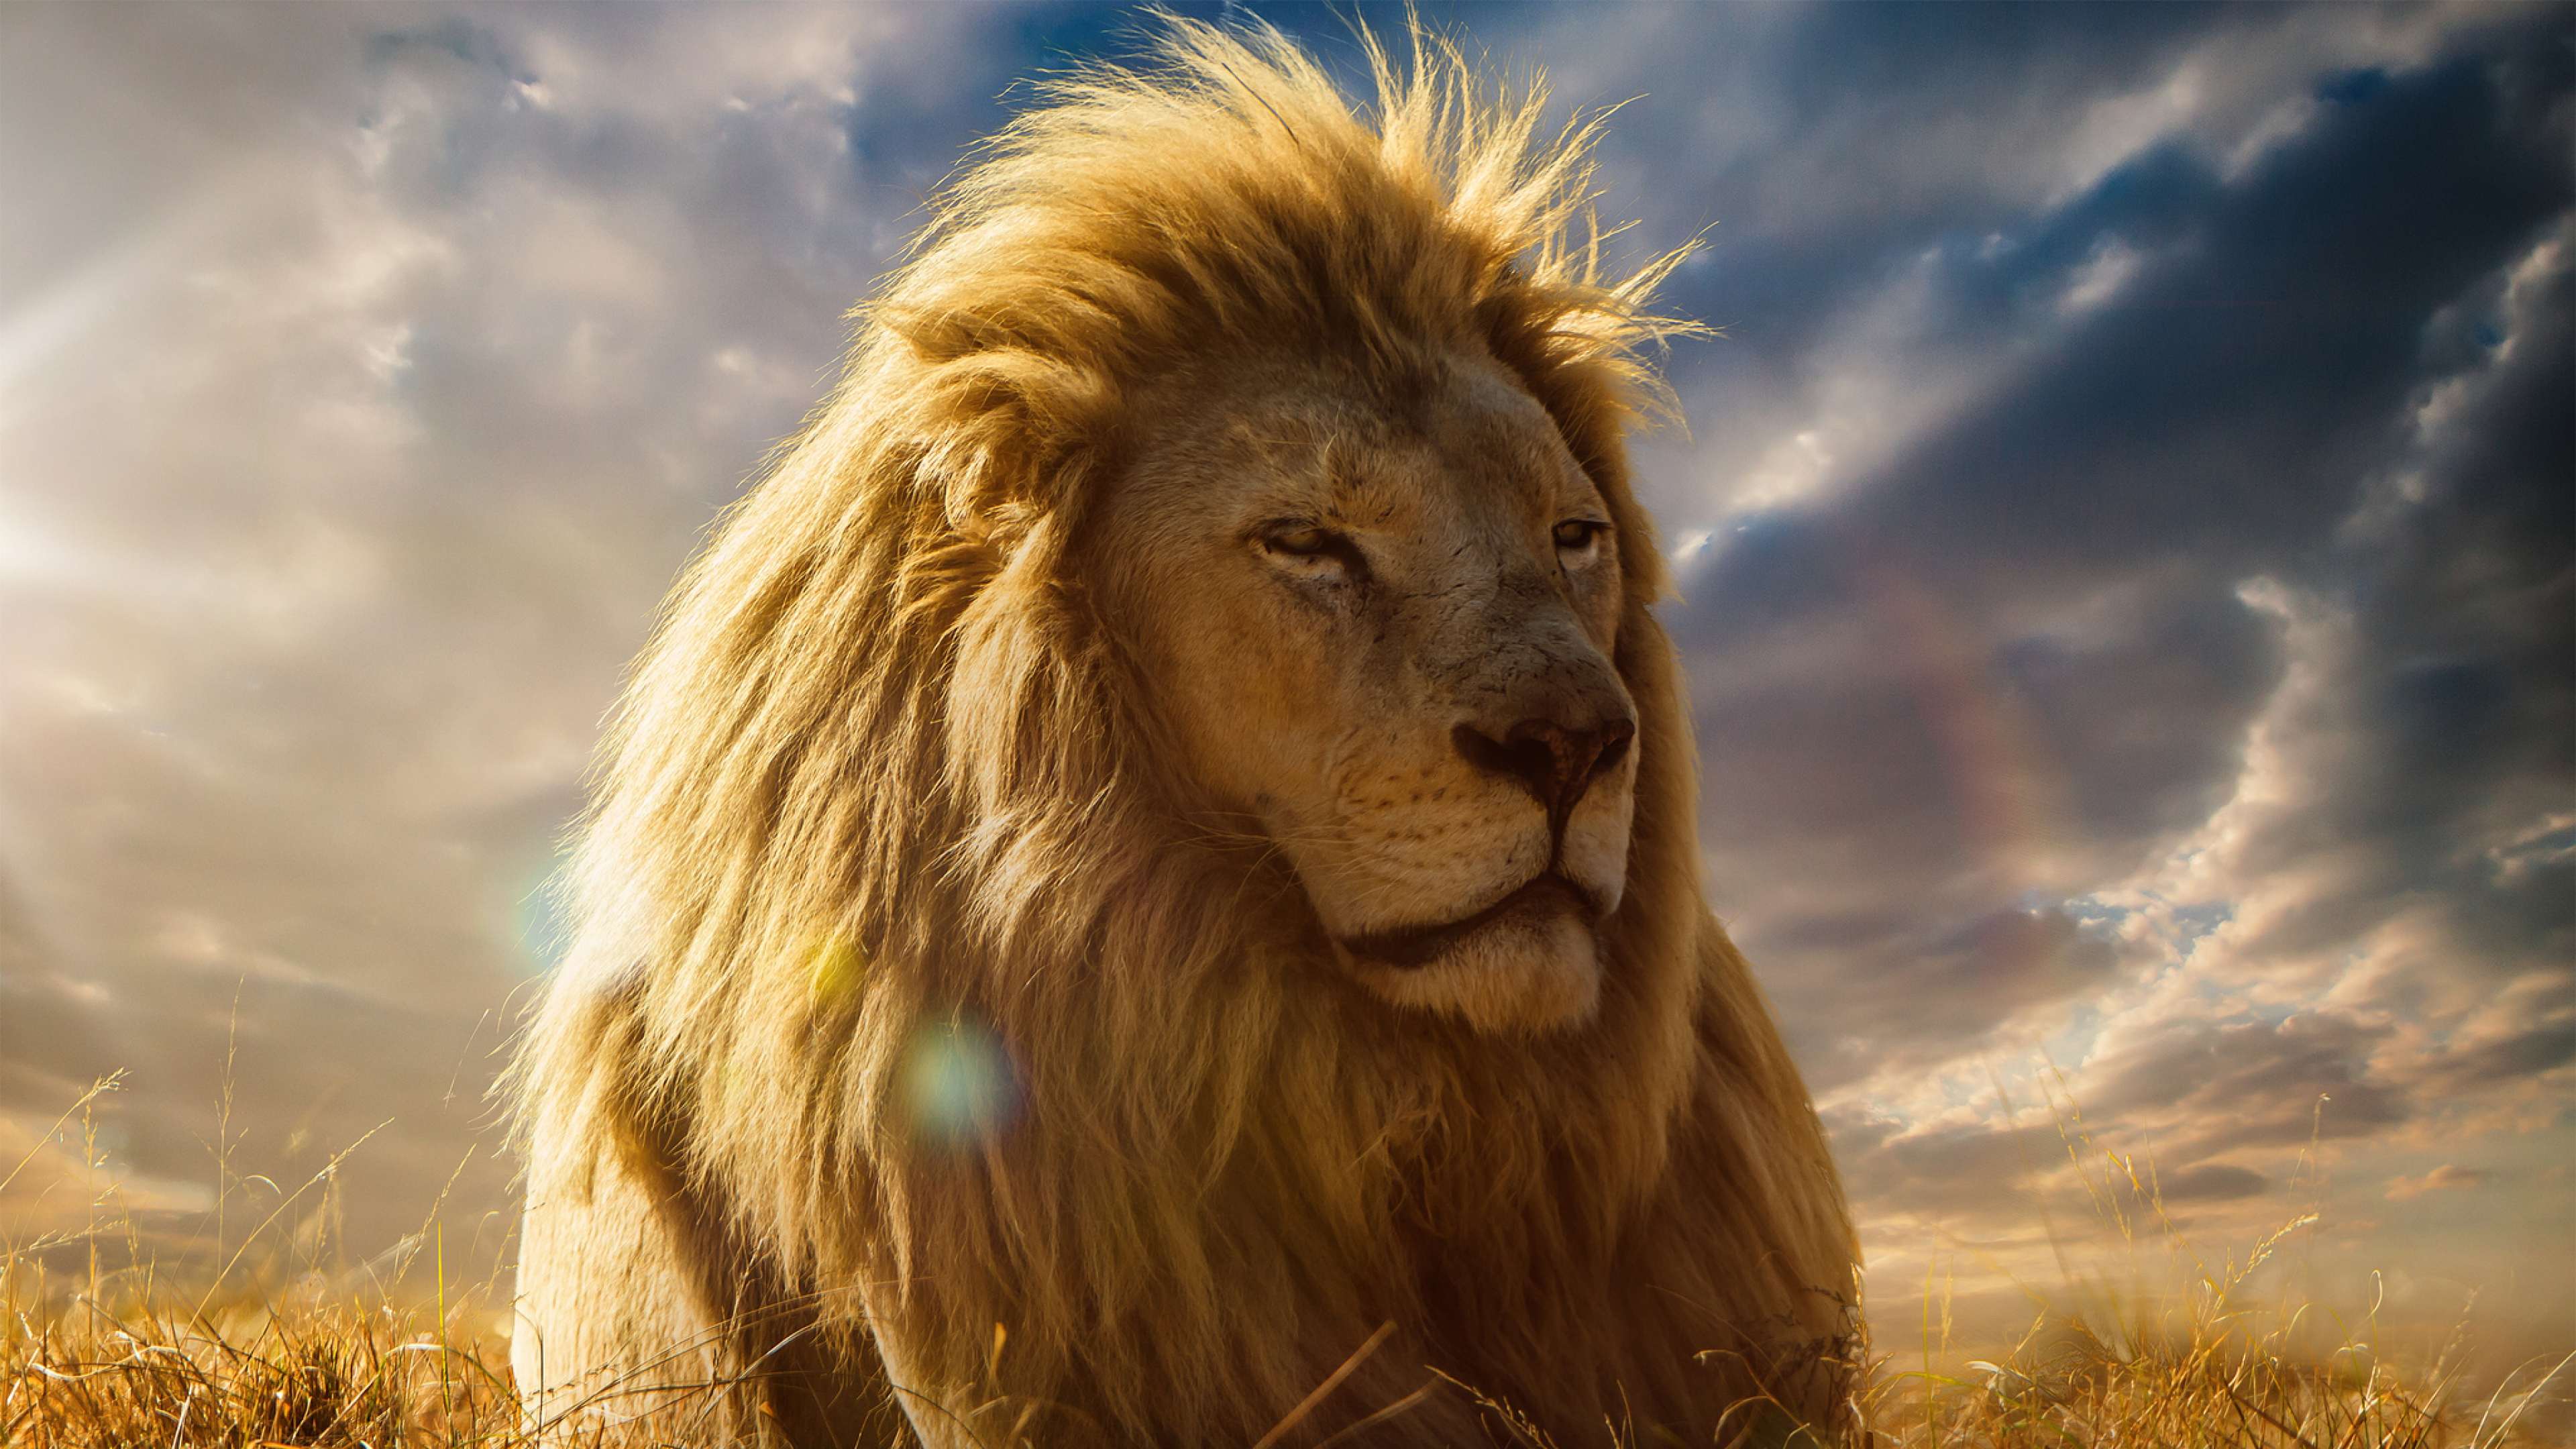 lion king 4k | animals hd 4k wallpapers